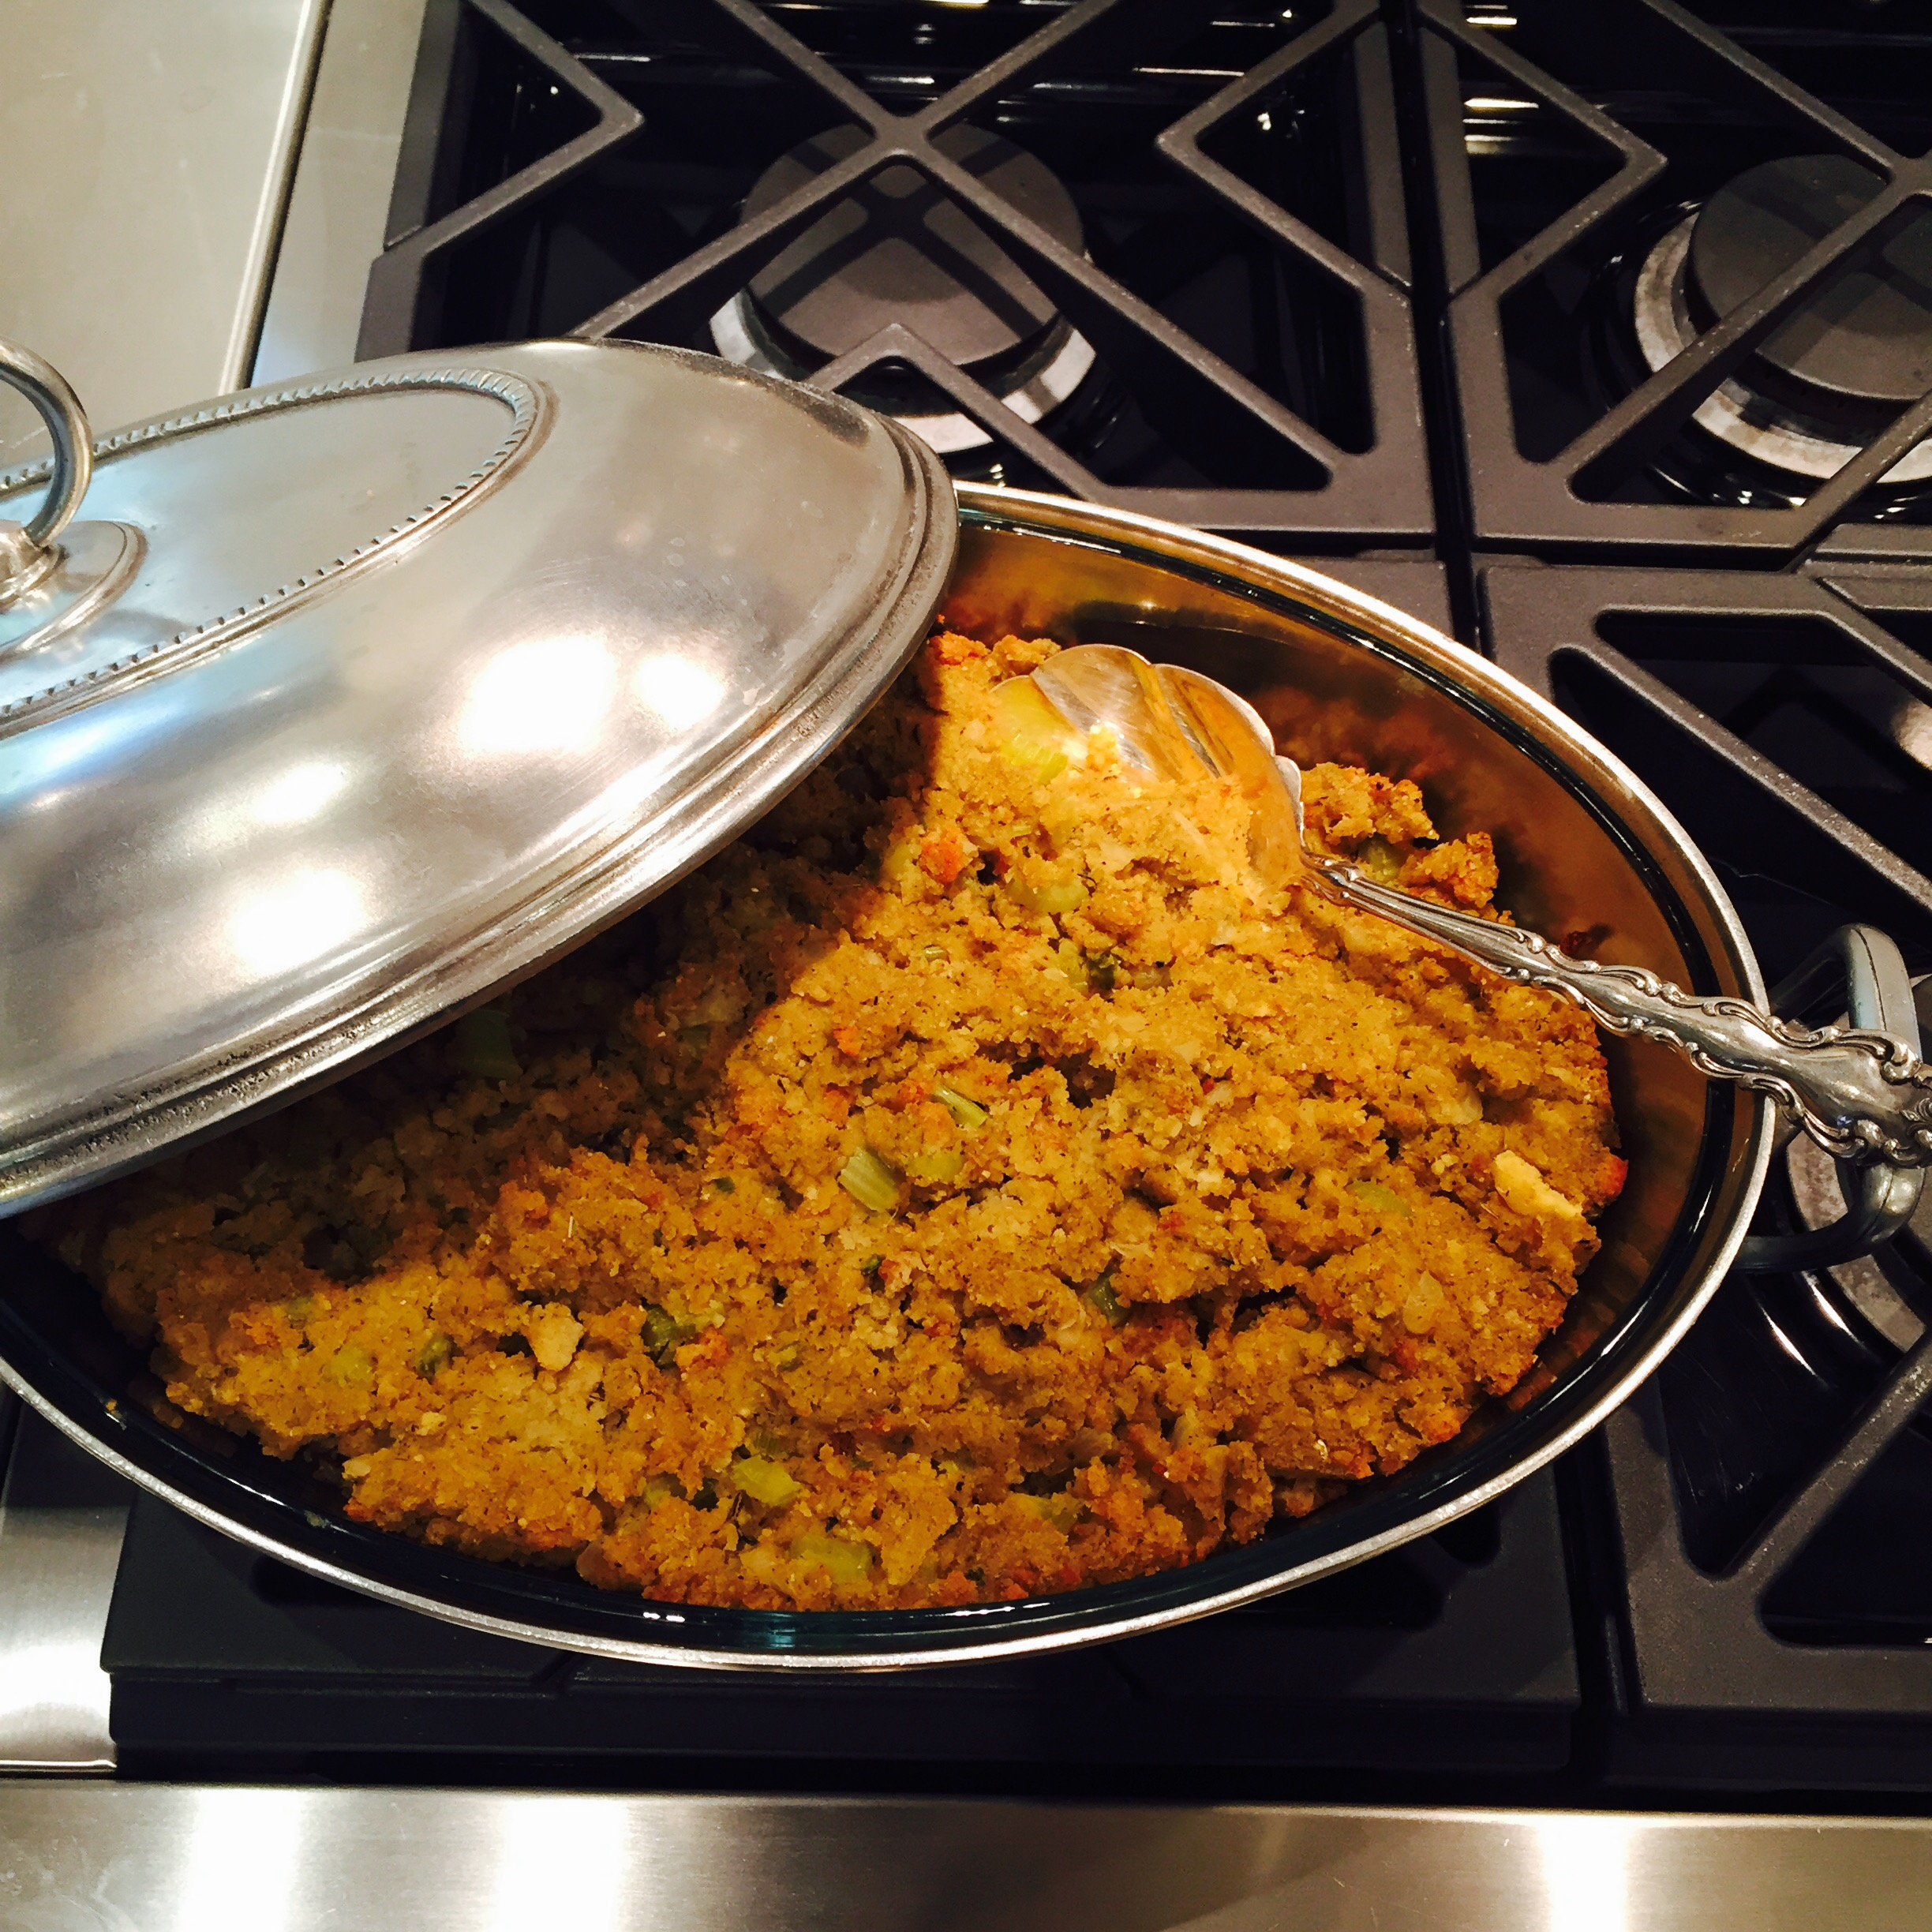 Gluten Free Thanksgiving Stuffing #1 from semi-scratch.